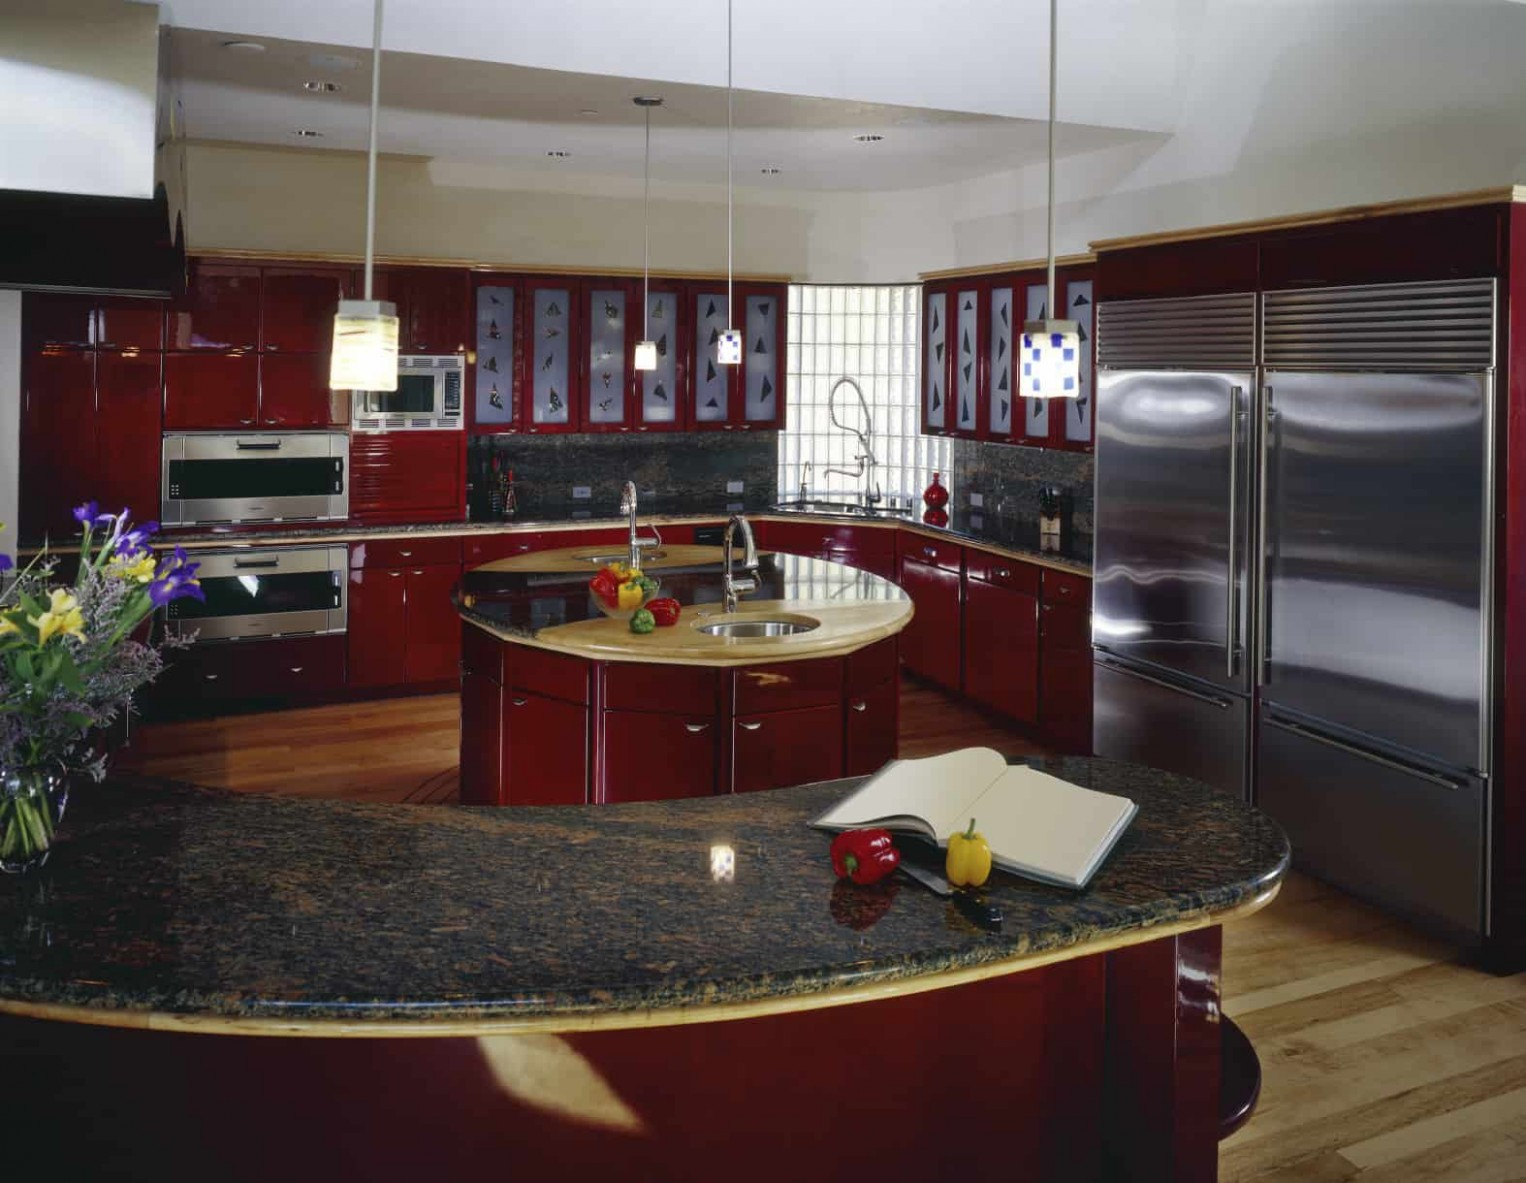 10 Red Kitchen Ideas with Red Cabinets (10 Photos) - Red Kitchen Walls With Dark Cabinets